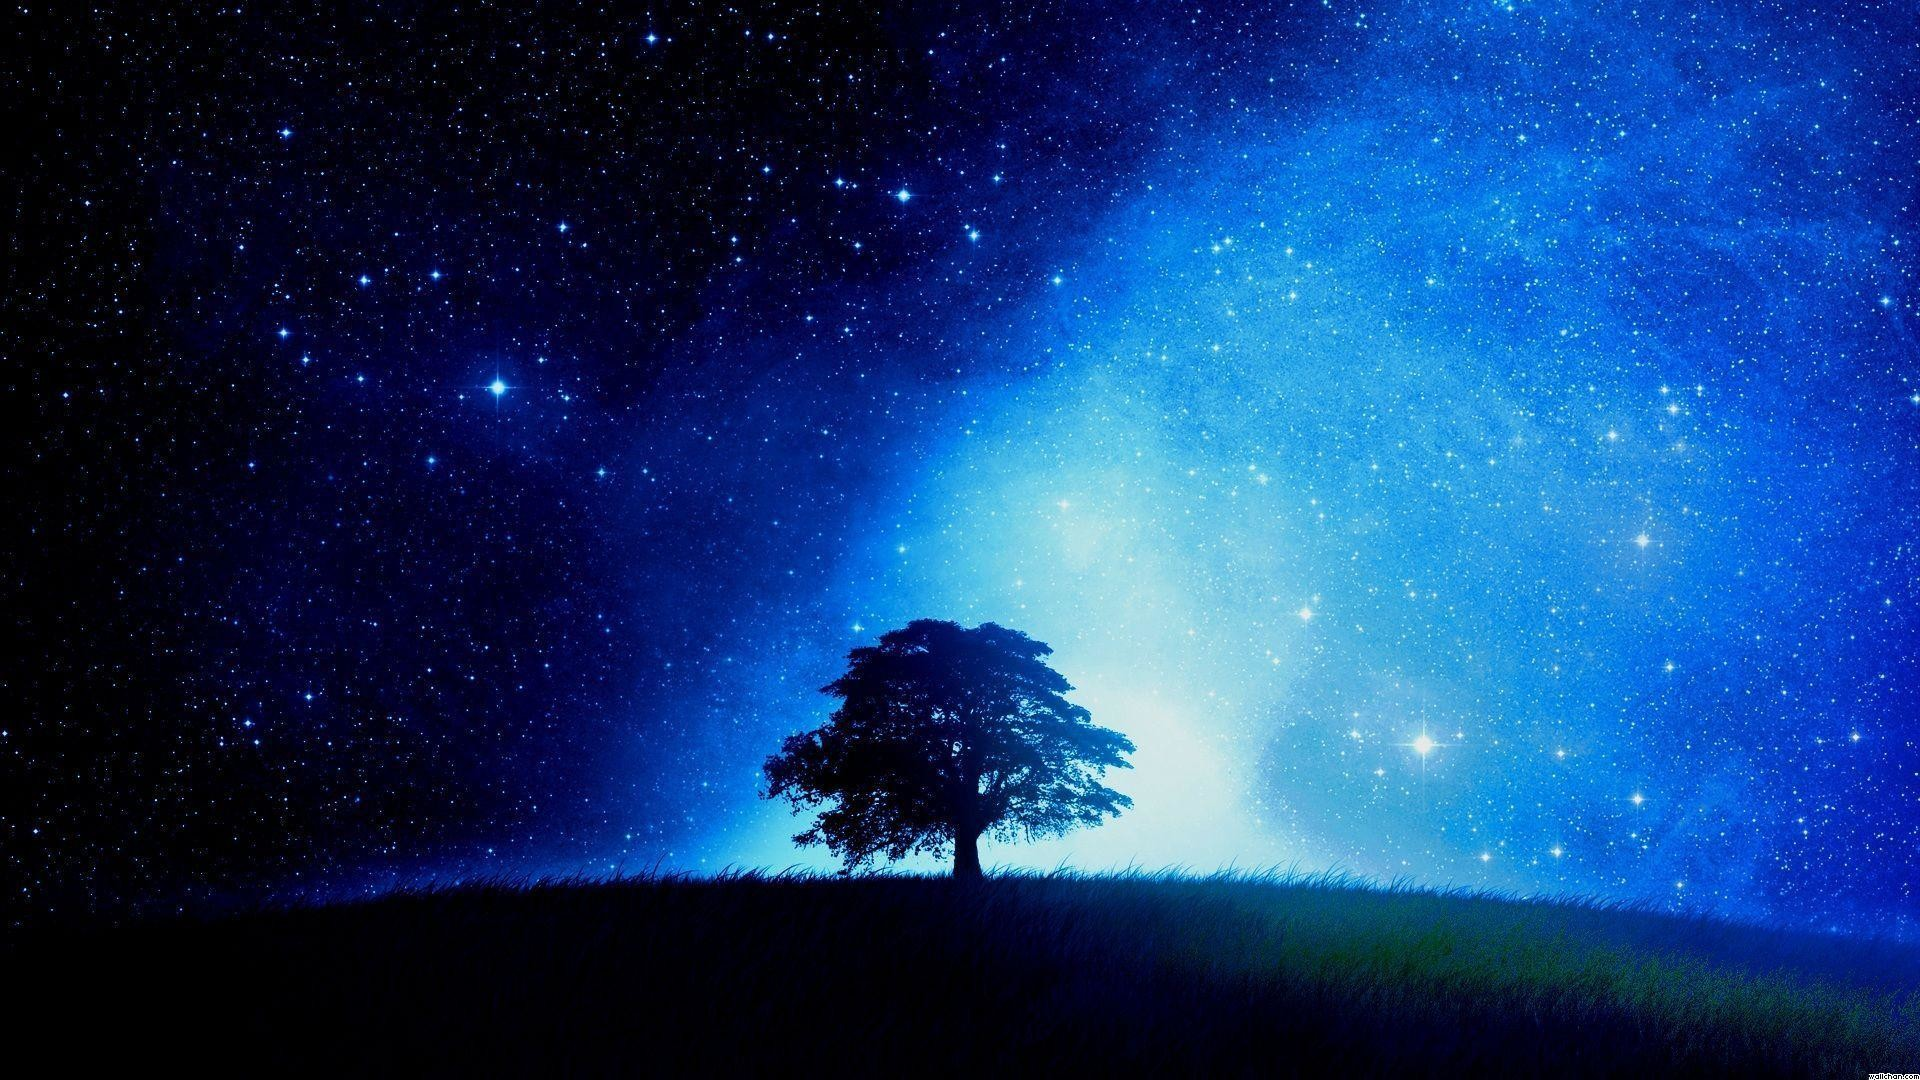 Starry Night Sky Wallpaper 30952 Wallpapers HD | Hdpictureimages.